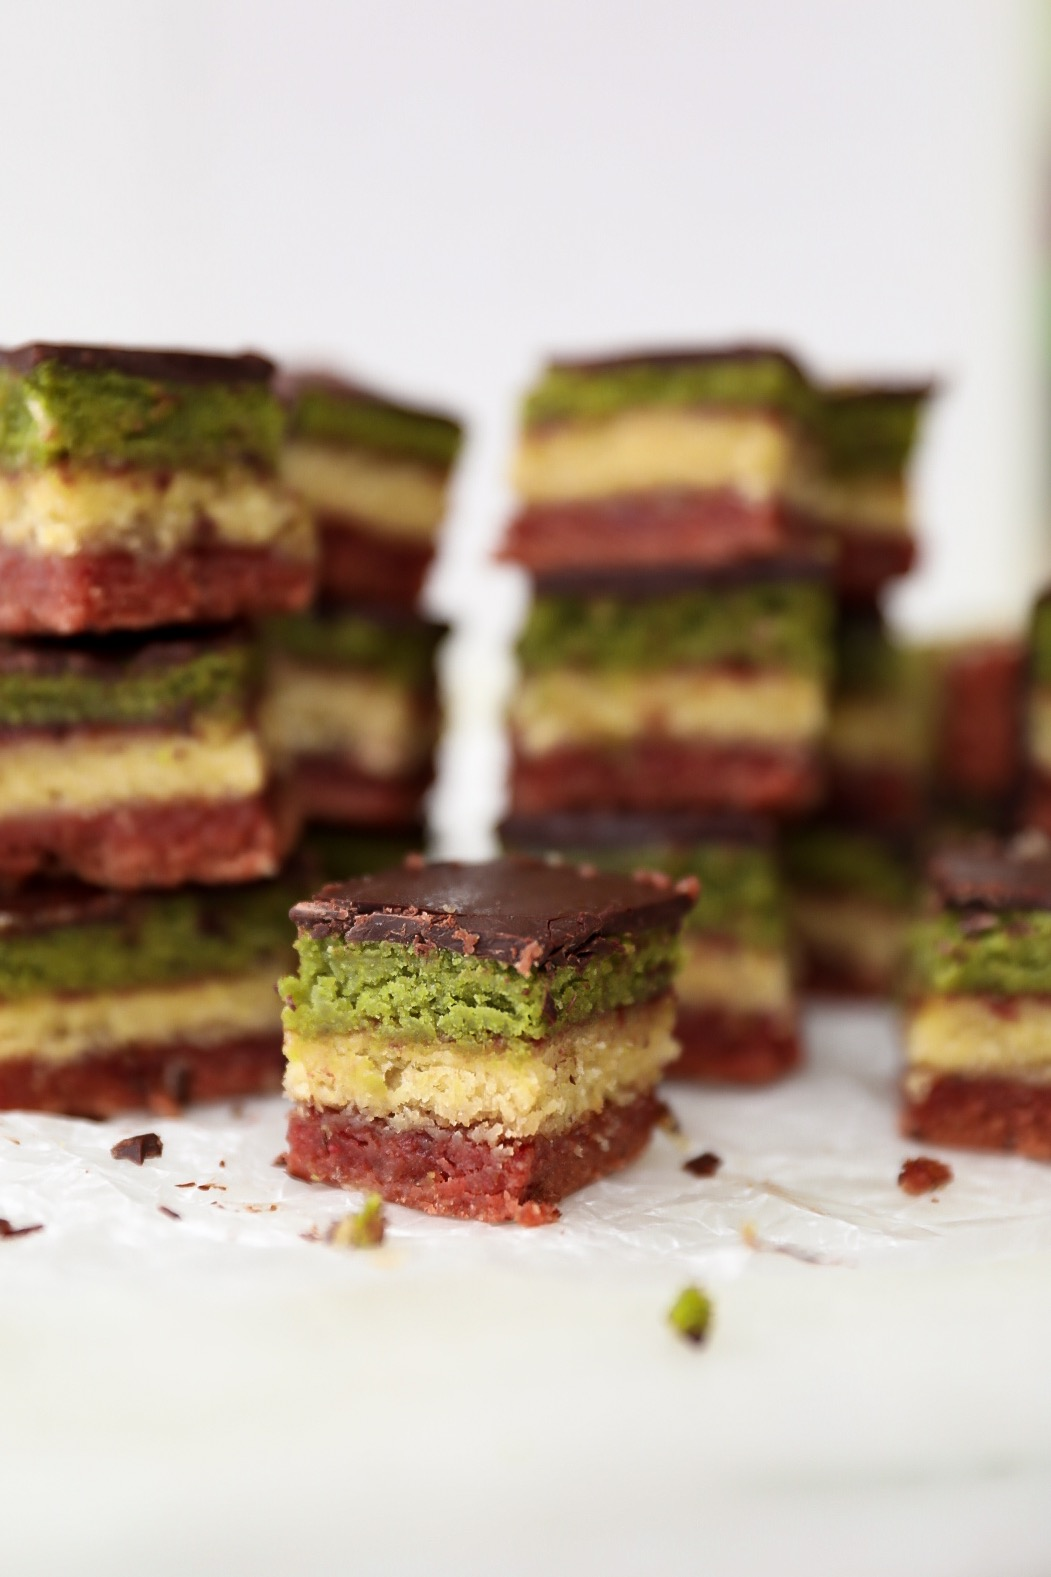 Rainbow cookies with matcha, almond and beet natural coloring